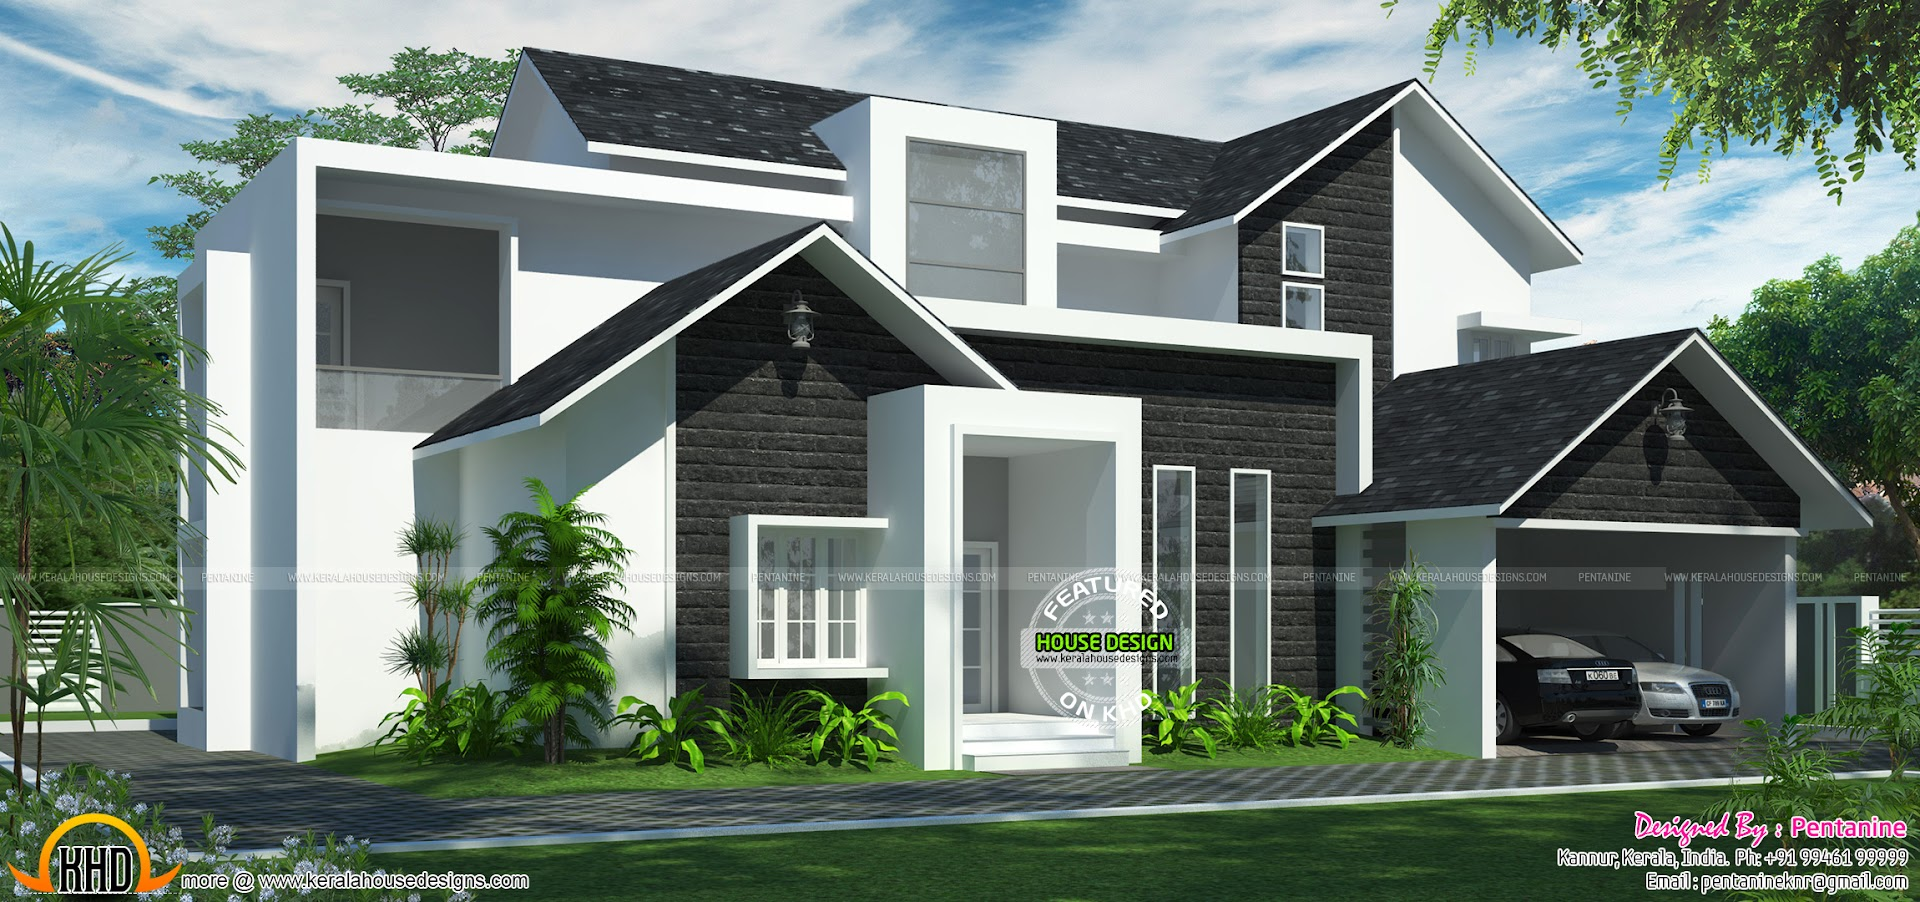 Western style modern home kerala home design and floor plans for Western style houses